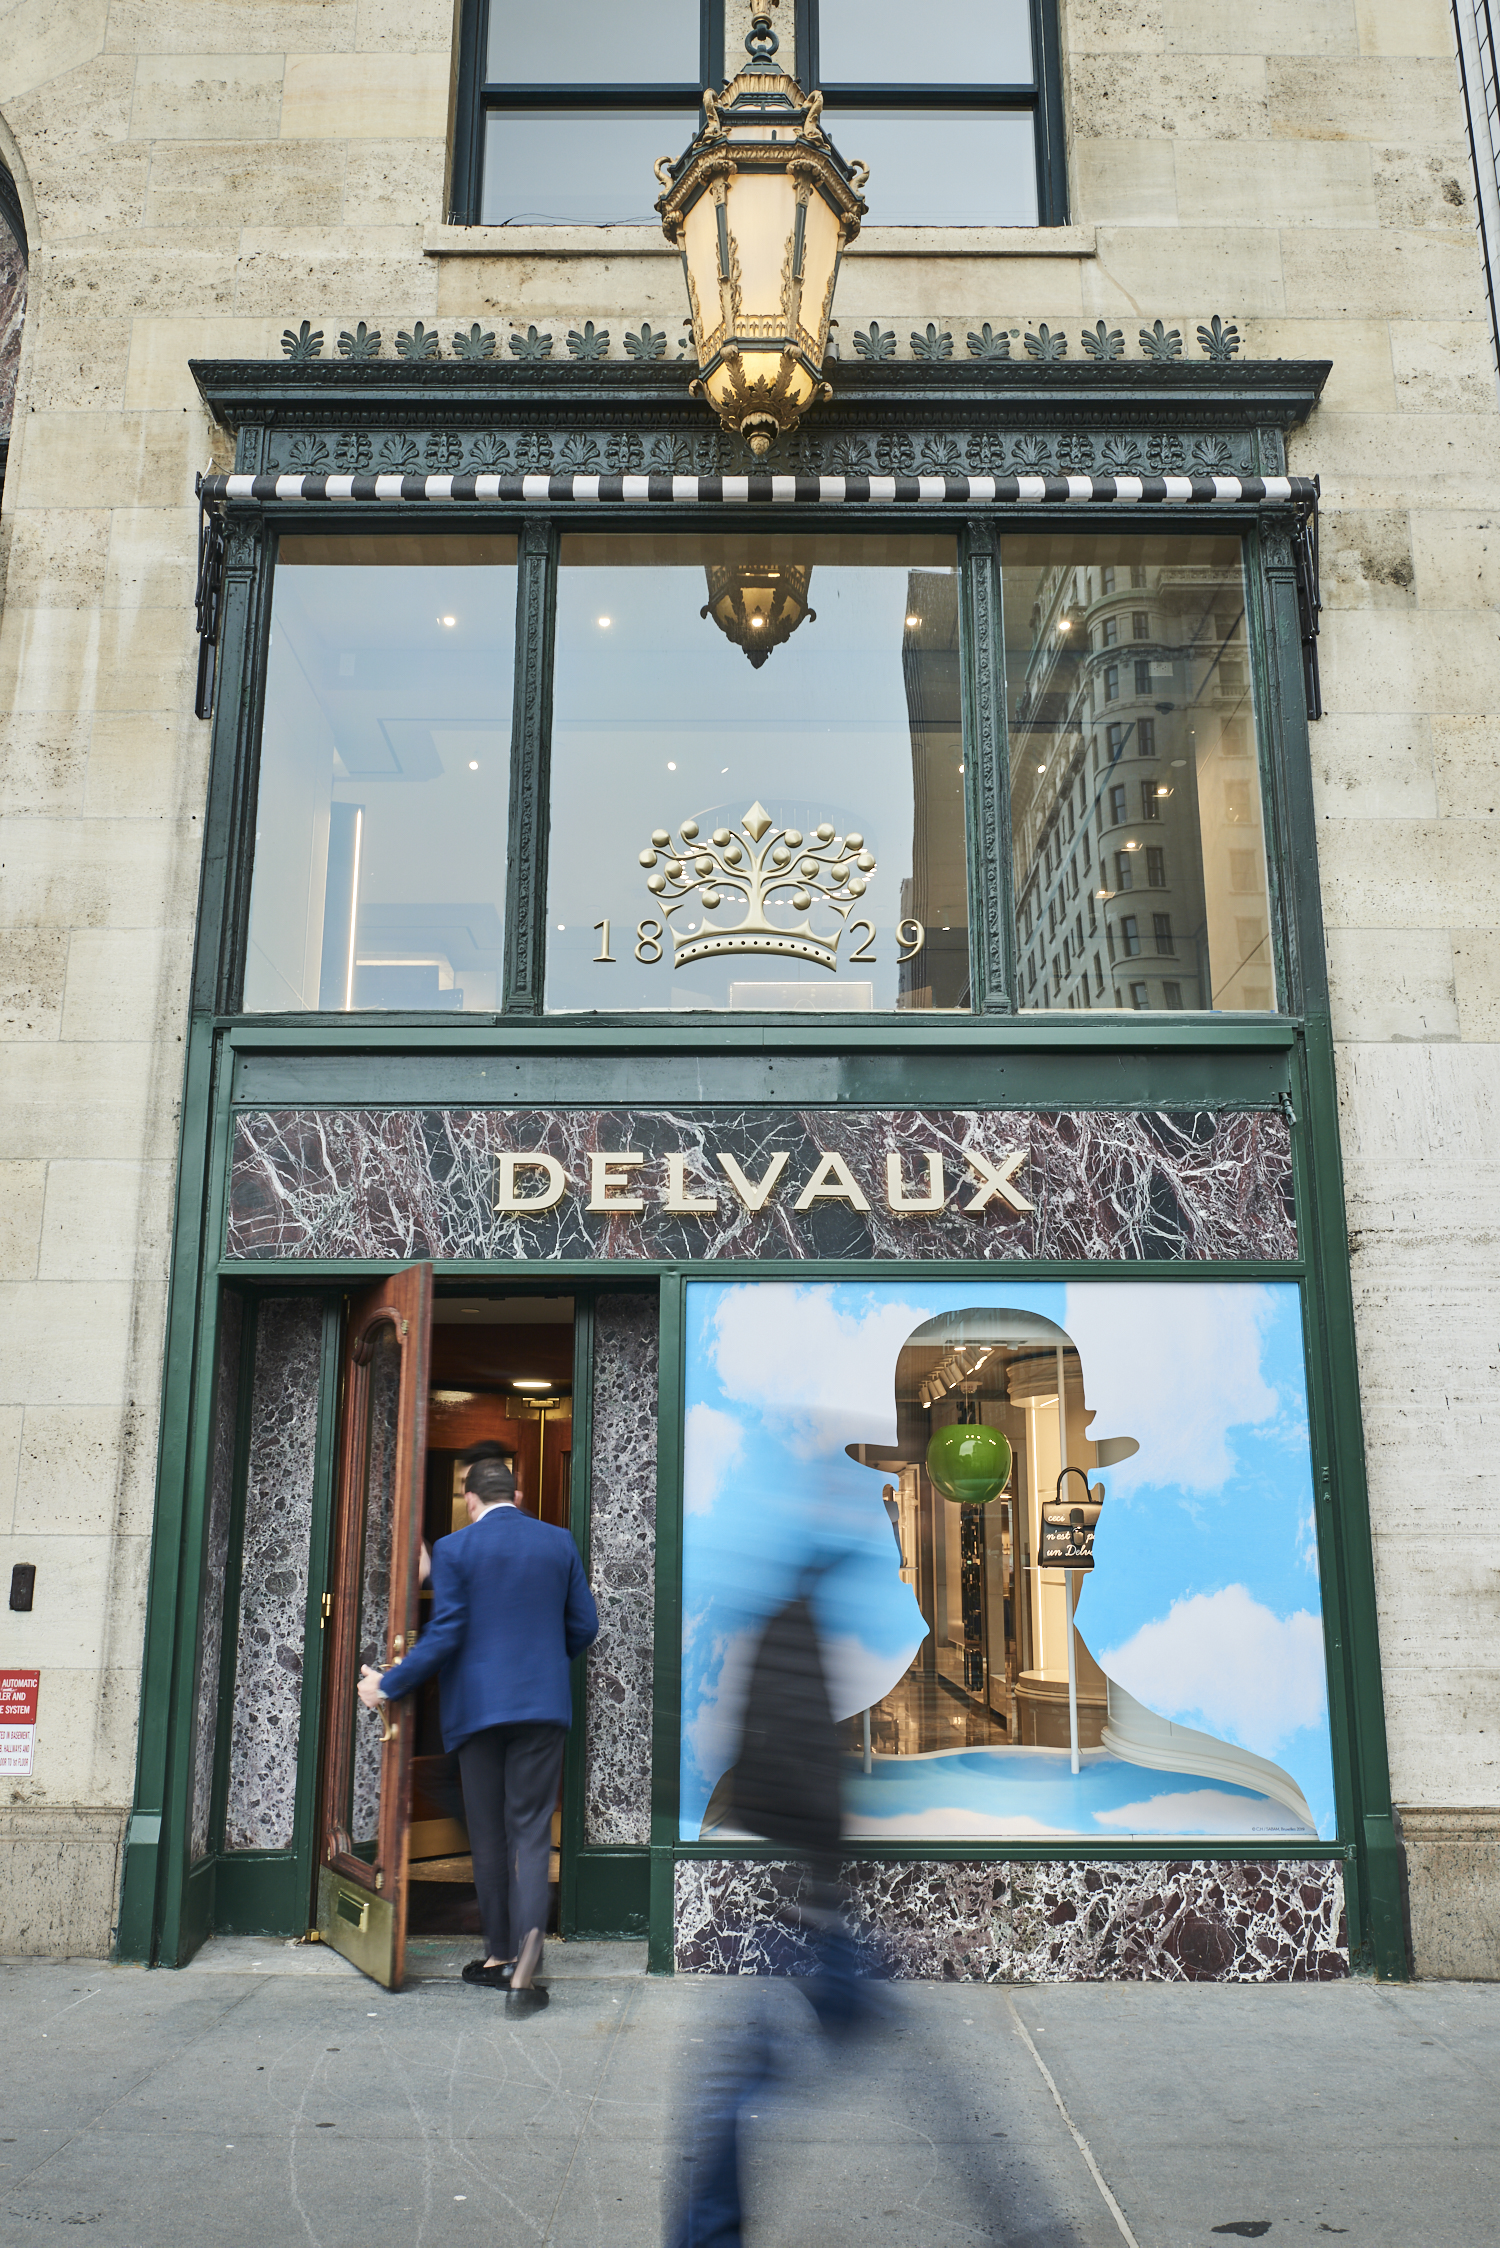 Delvaux_Magritte_NYC_690.jpg